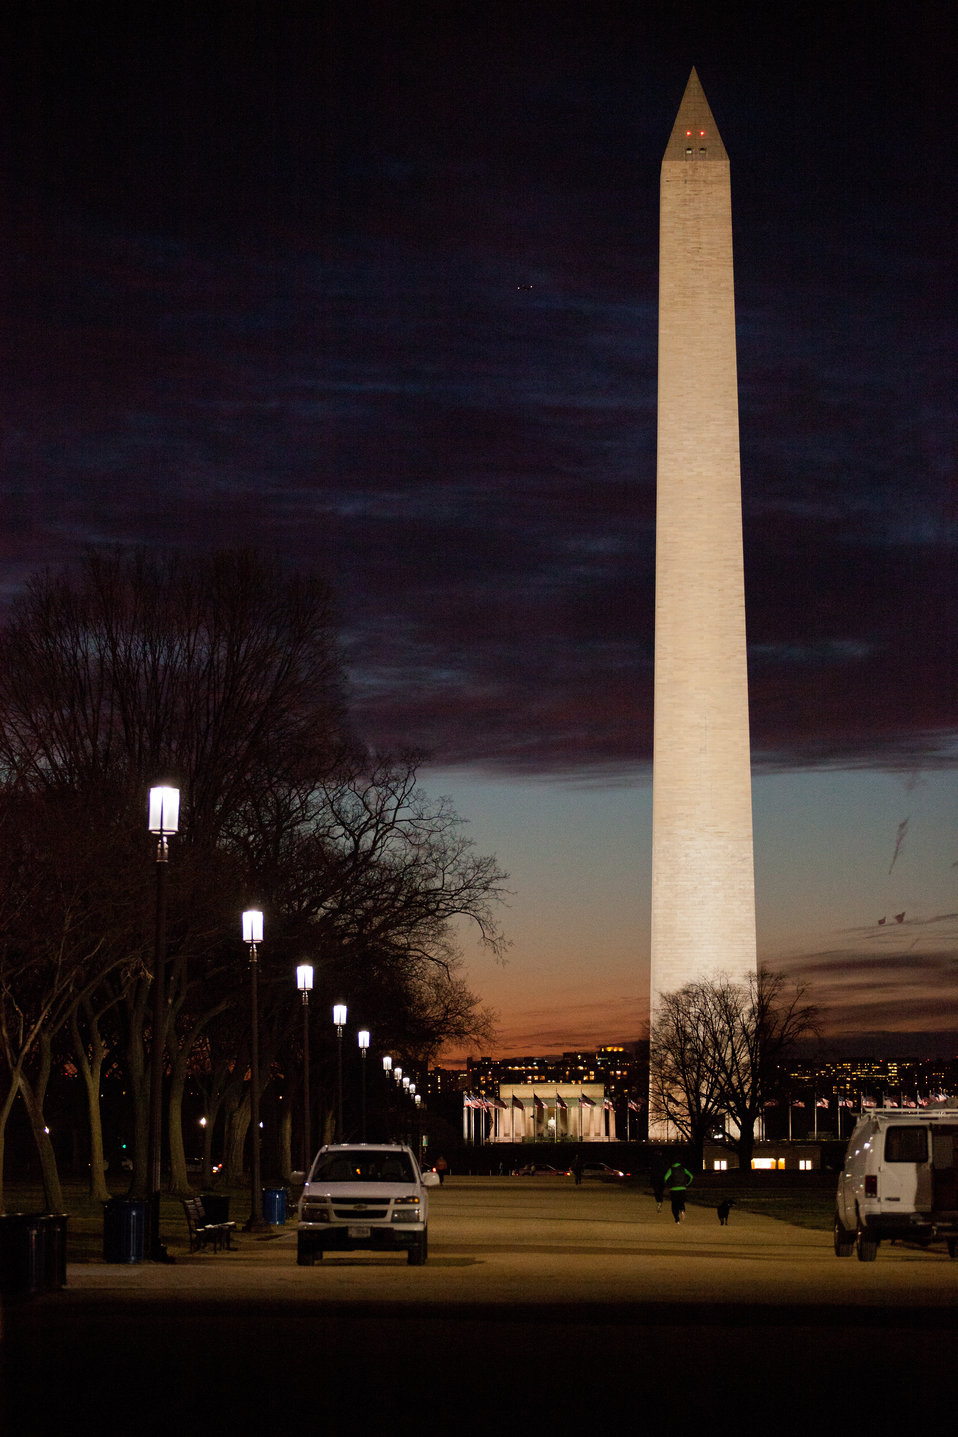 The Washington Monument with LED lighting int he foreground